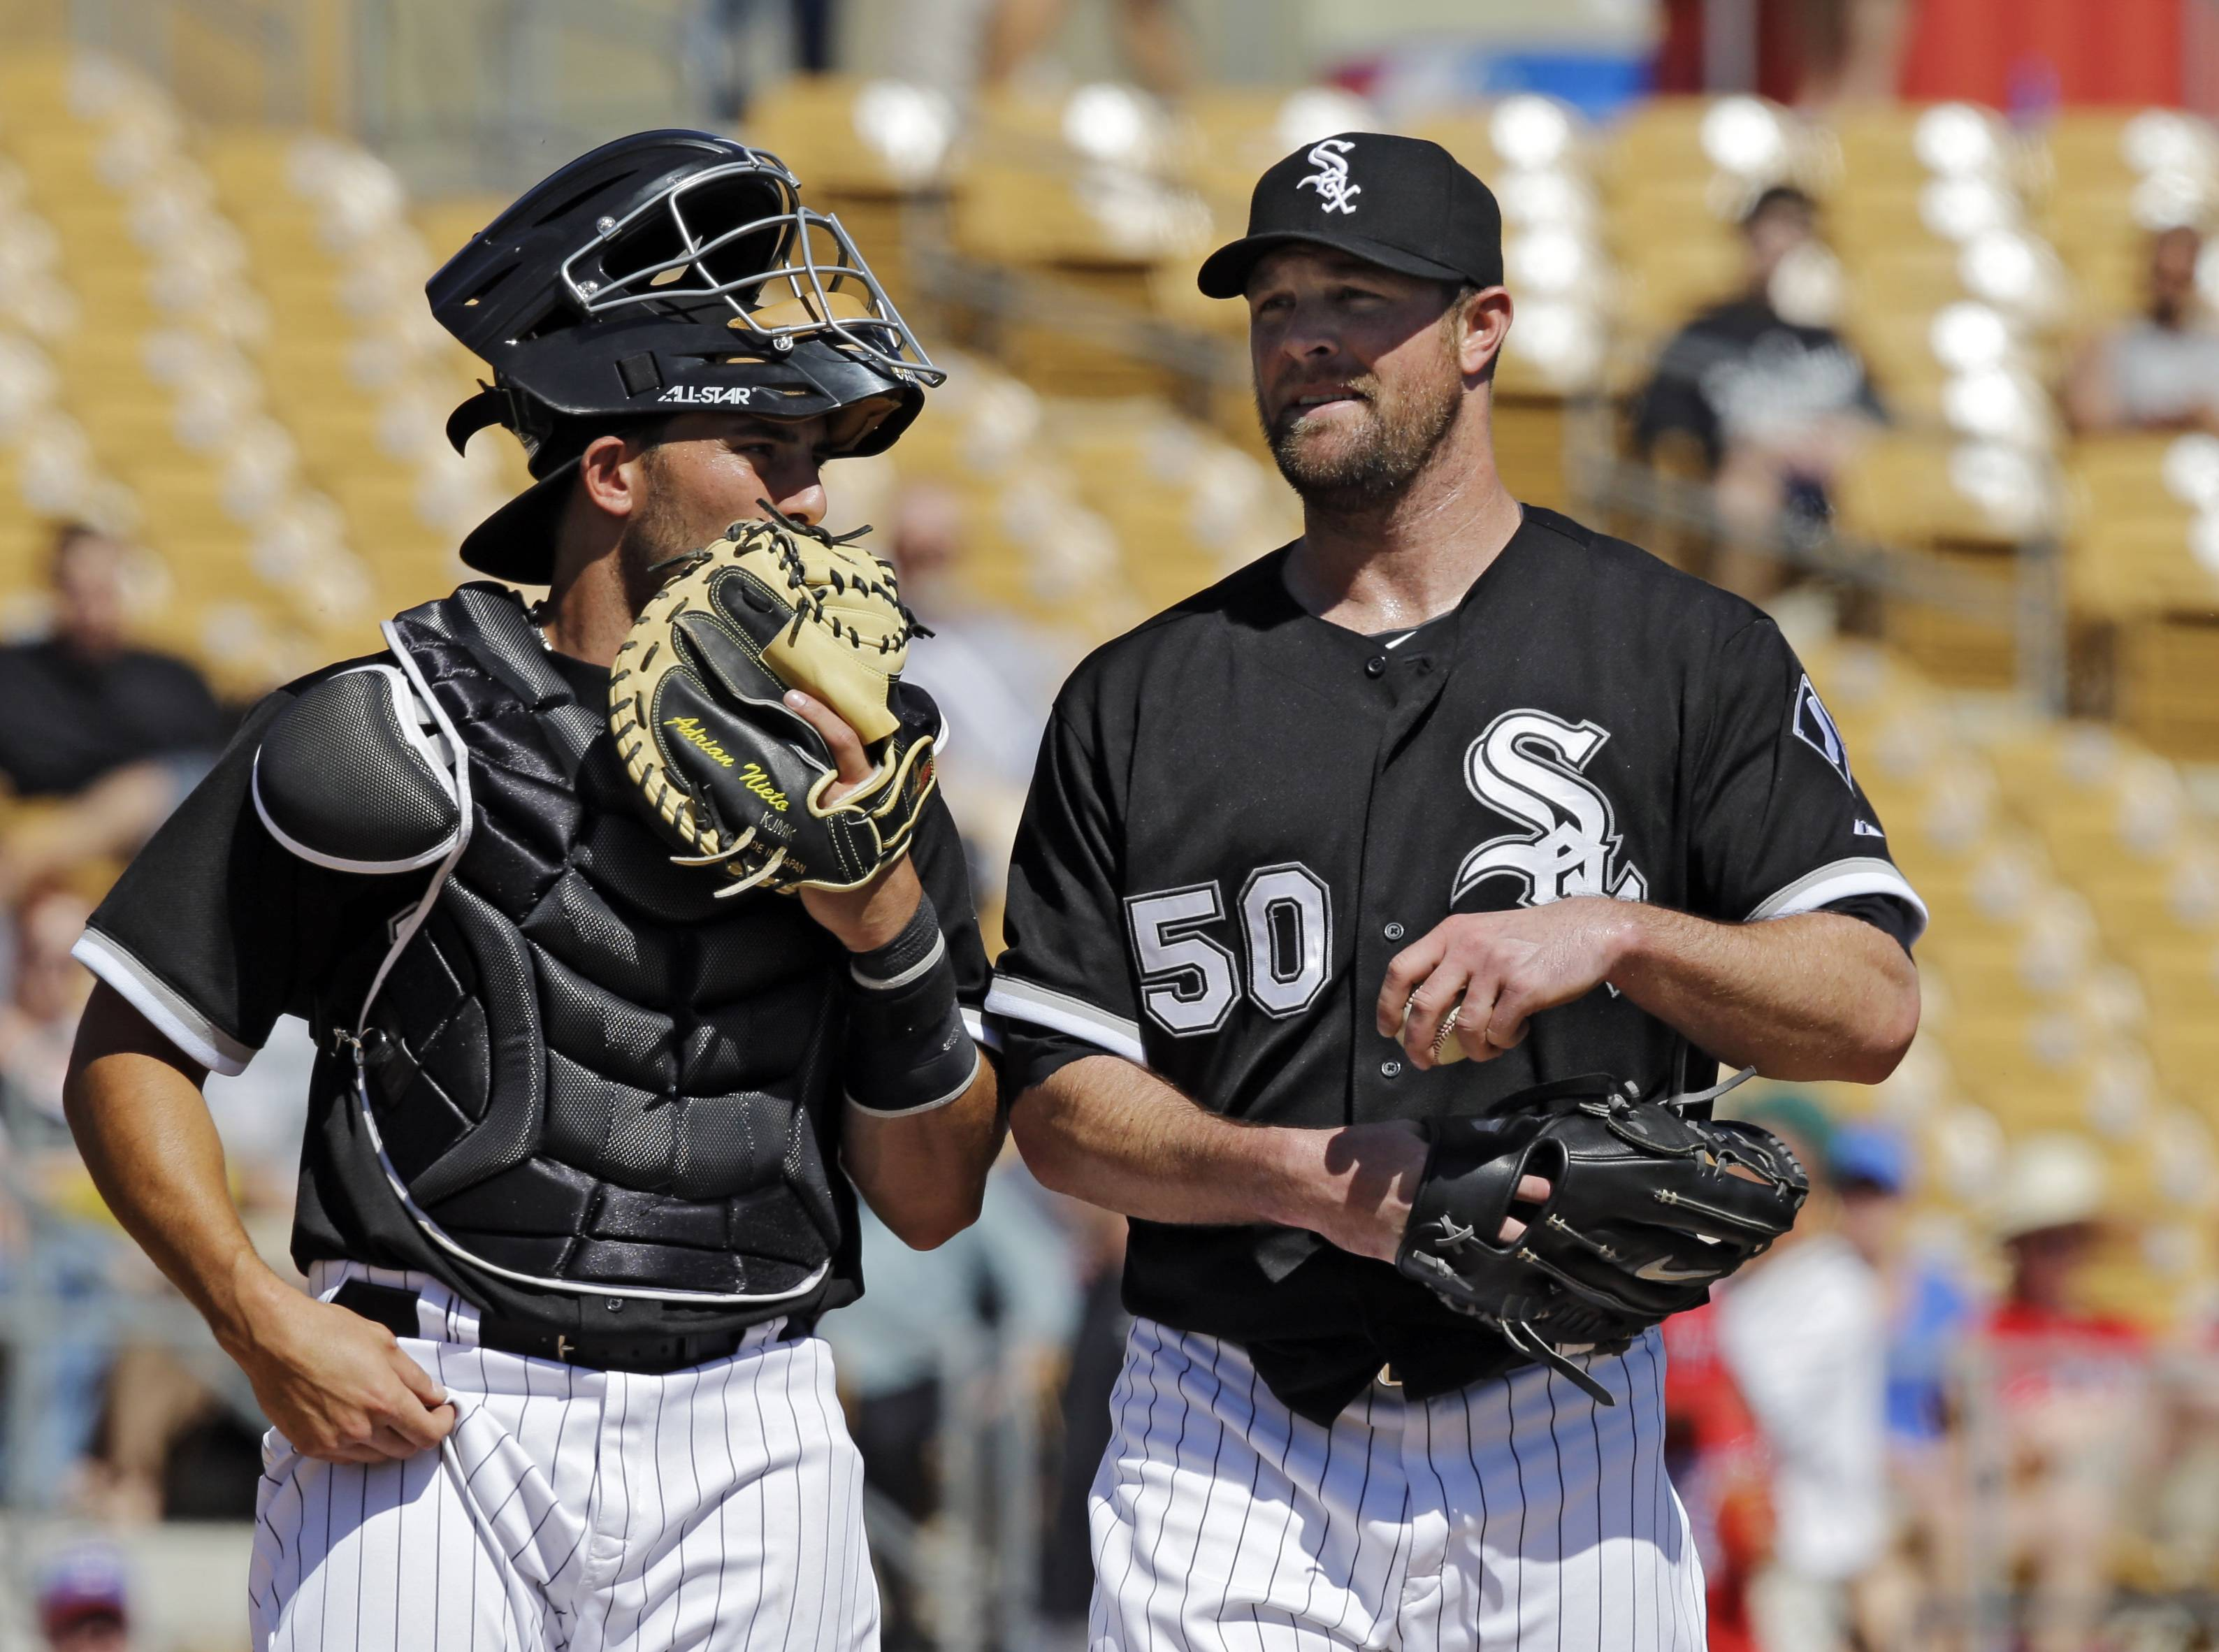 Adrian Nieto, who is battling for the backup catcher's job, confers with starting pitcher John Danks on Sunday.